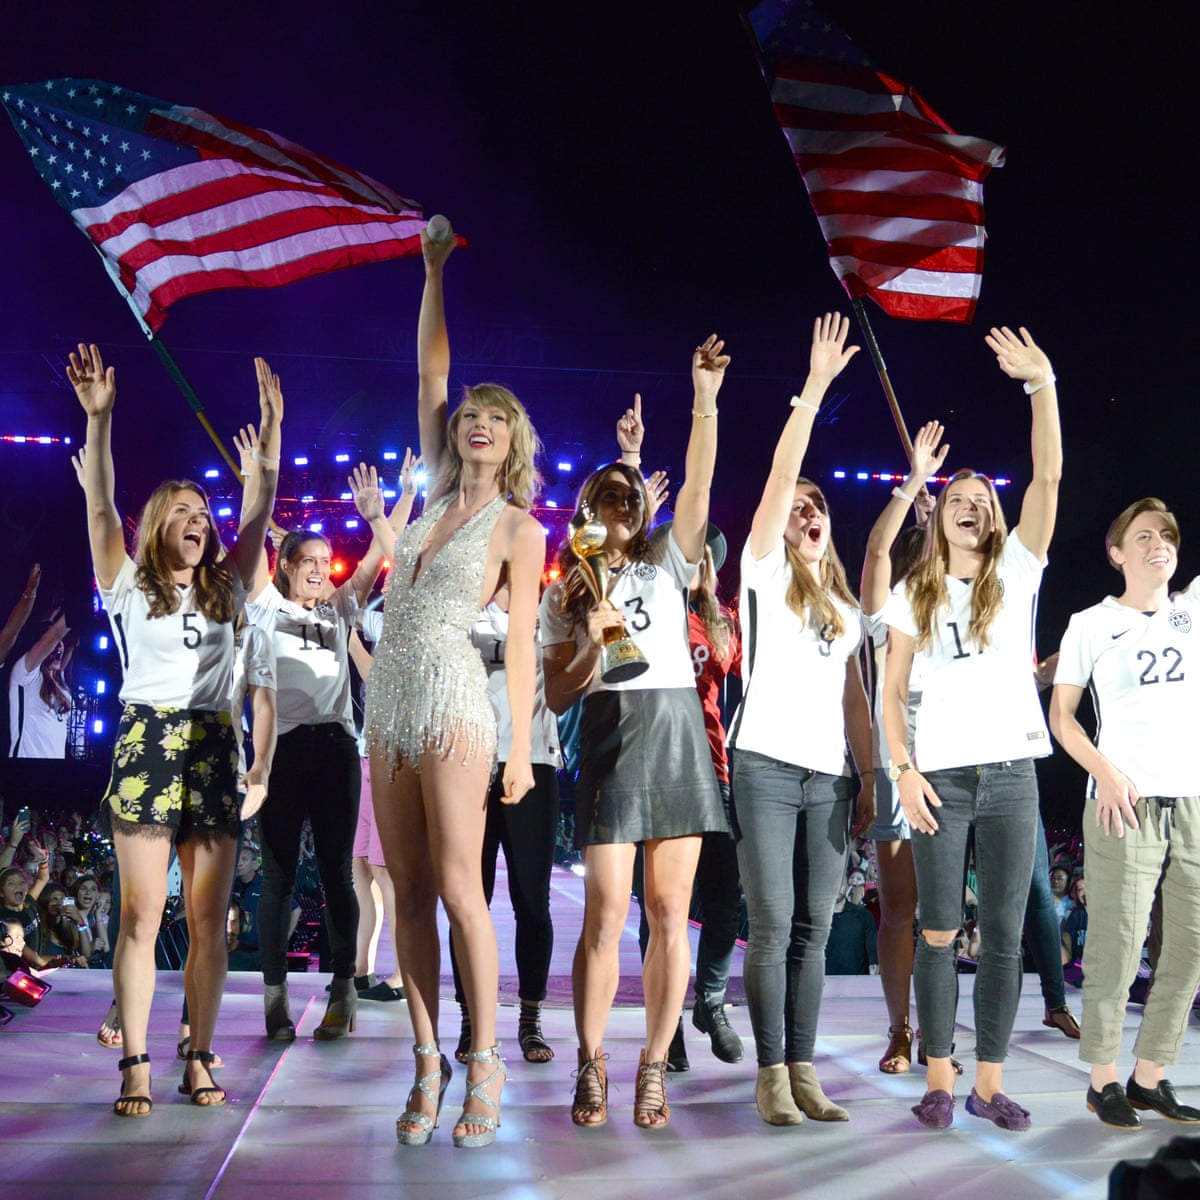 Taylor Swift Is A Us Women S Soccer Team Super Fan At New Jersey Concert Taylor Swift The Guardian